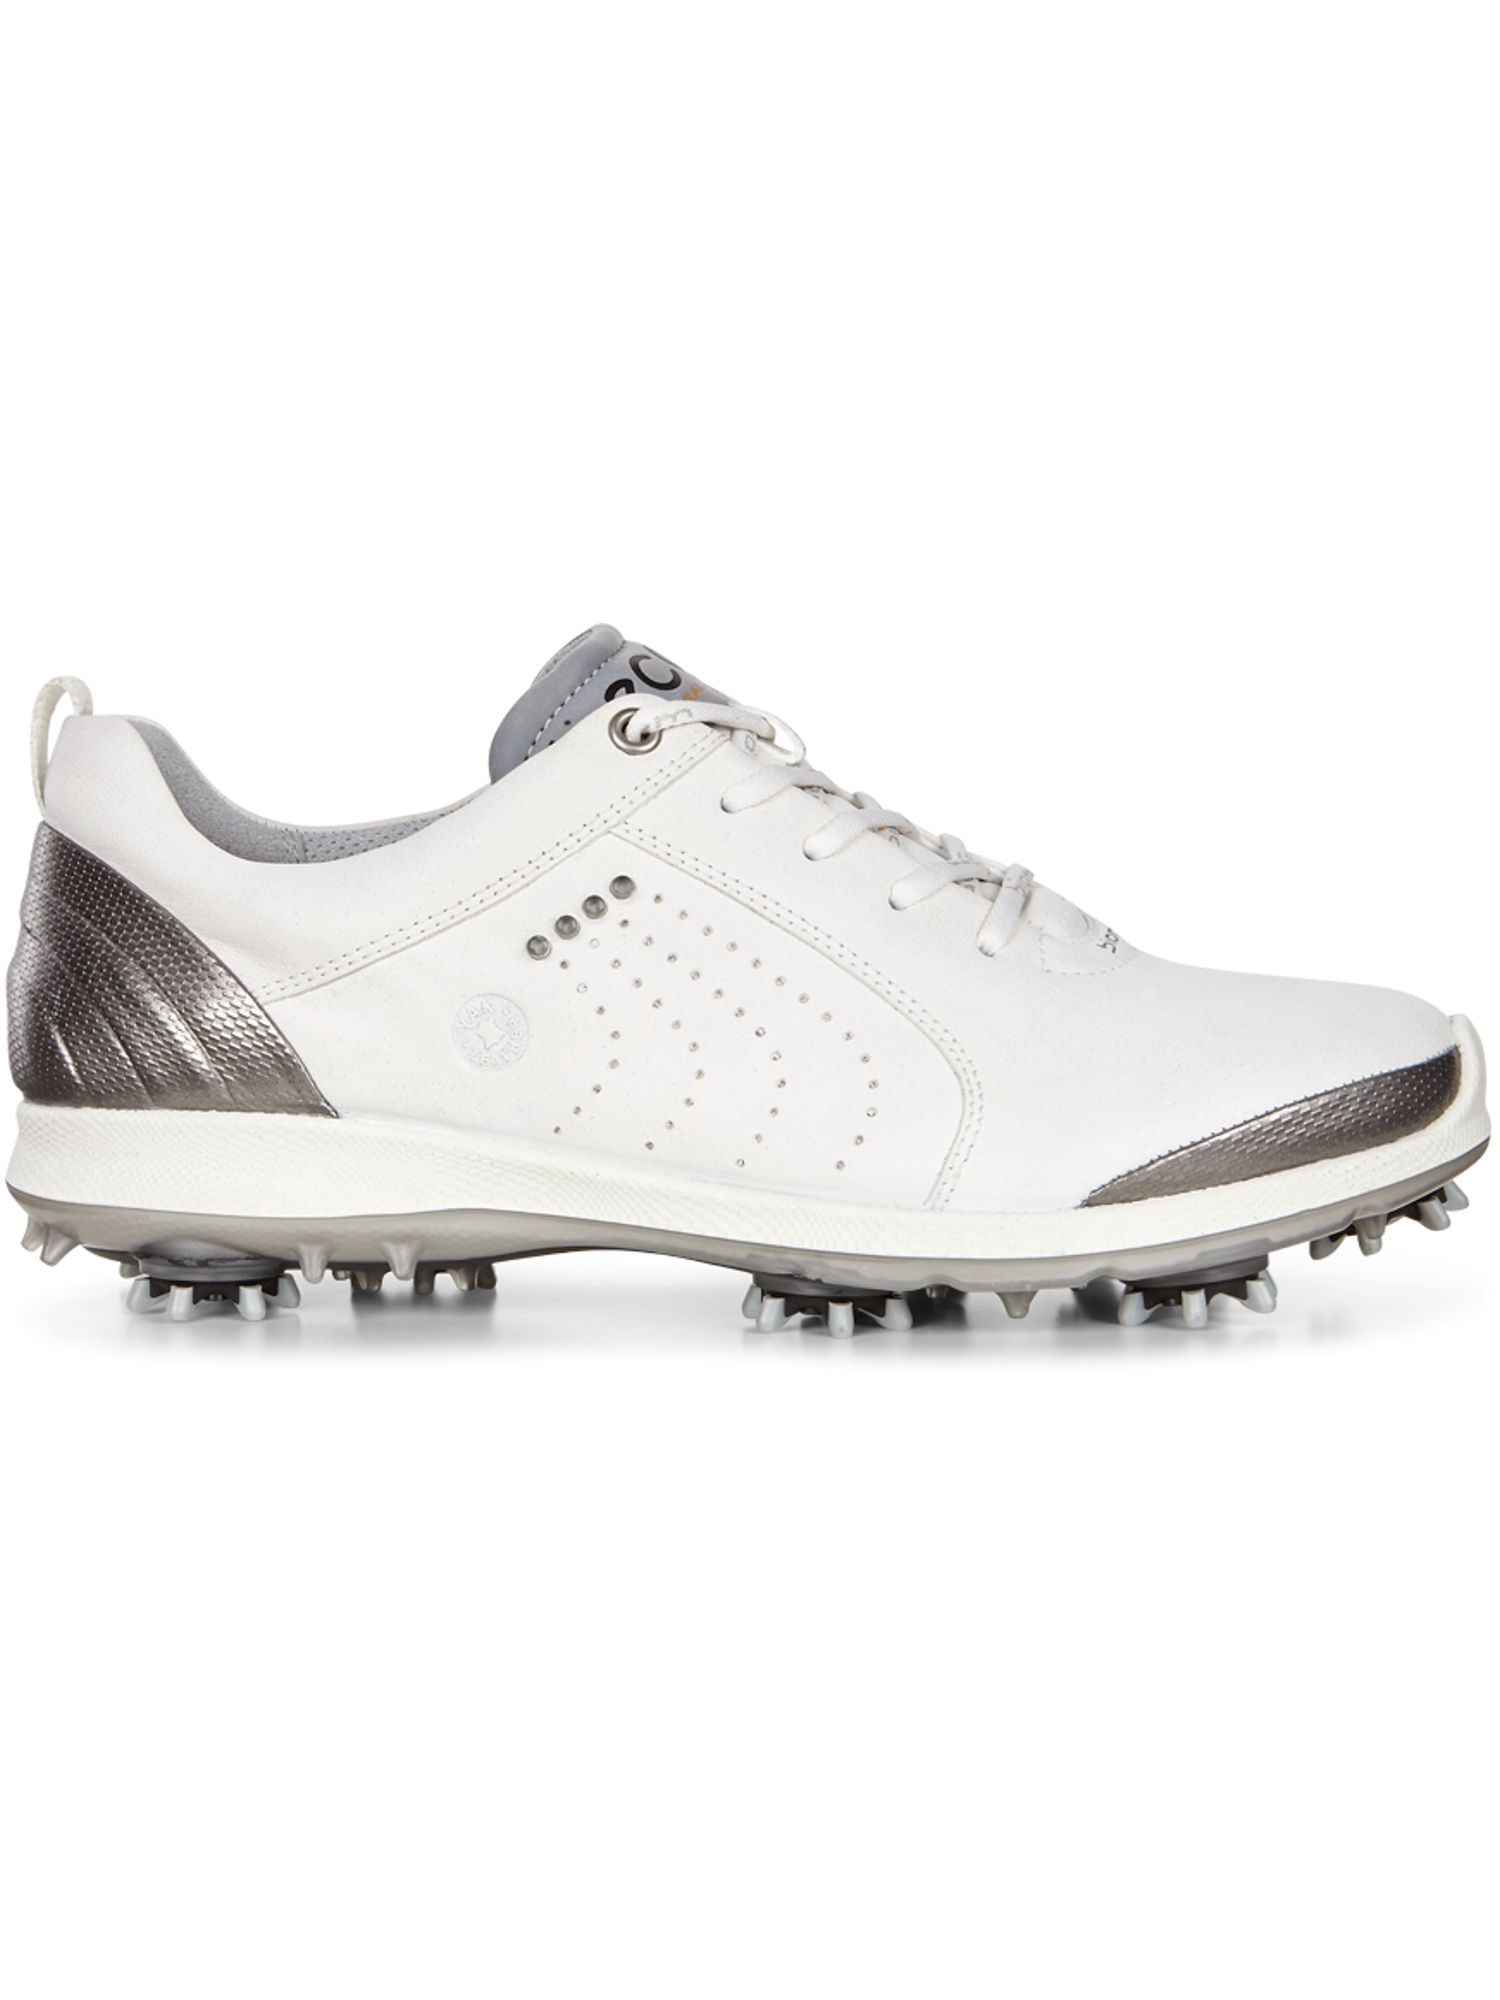 Ecco Biom G2 Golf Shoes White